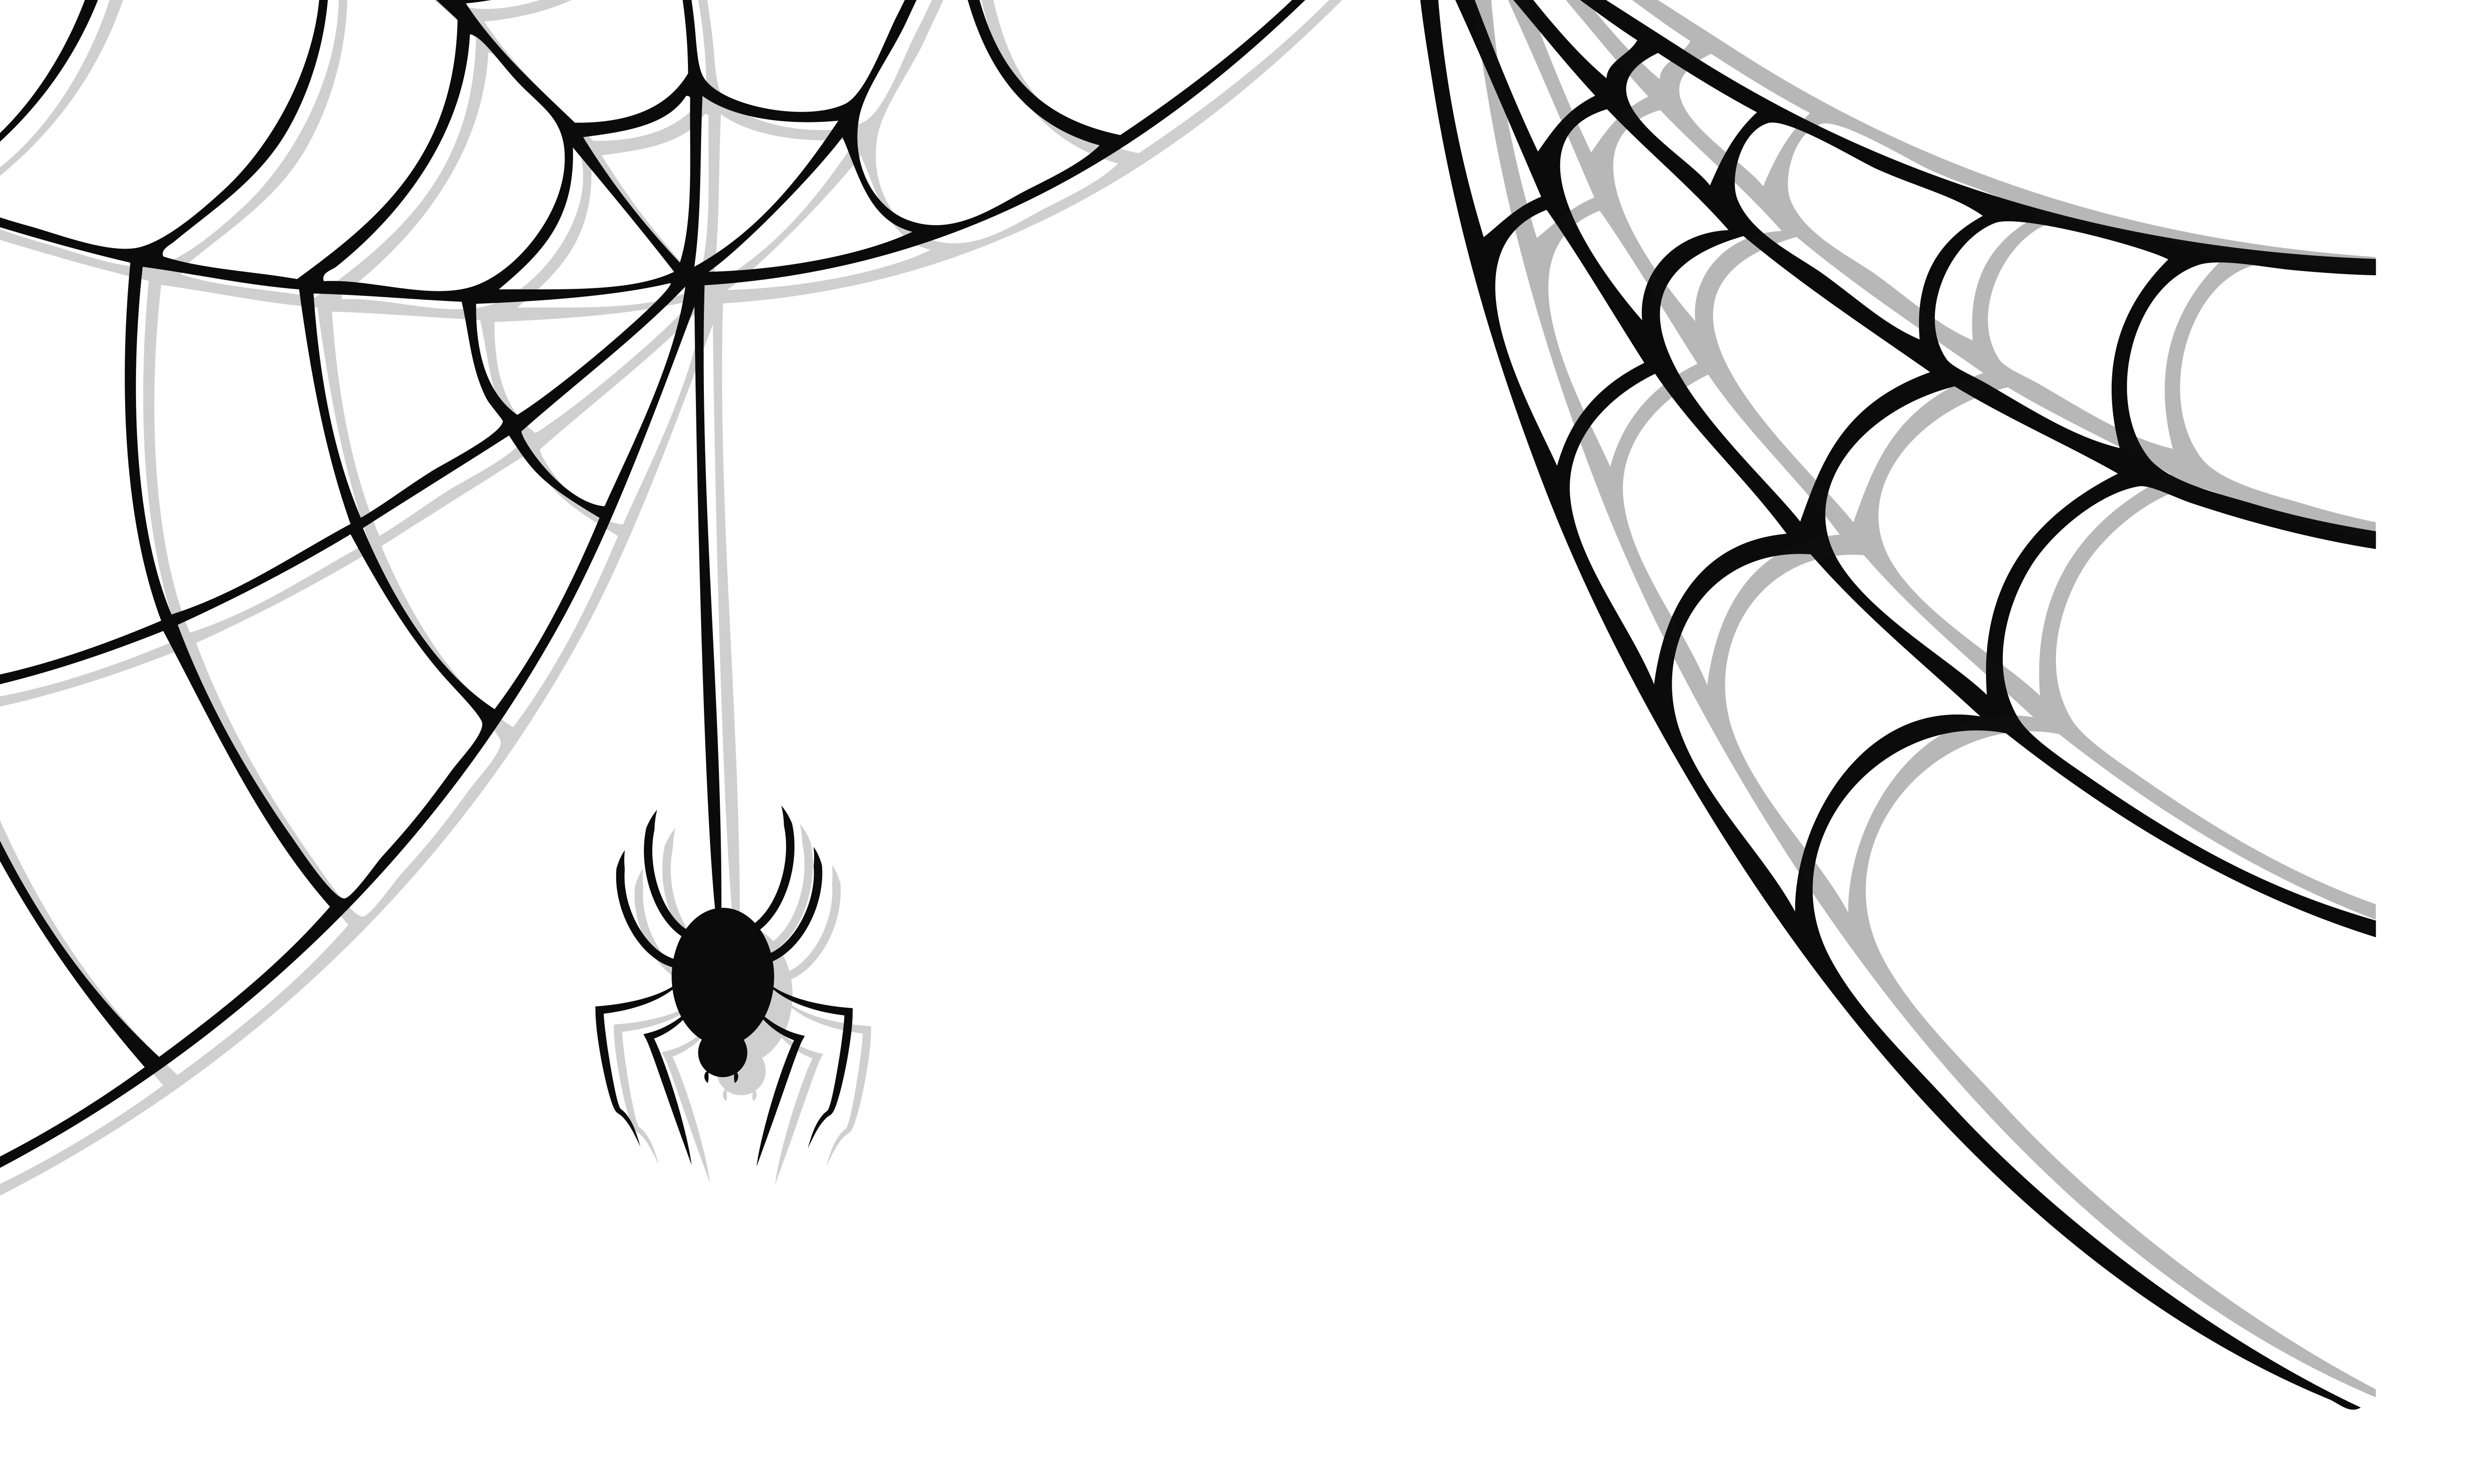 Halloween Spider Pictures - Cliparts.co